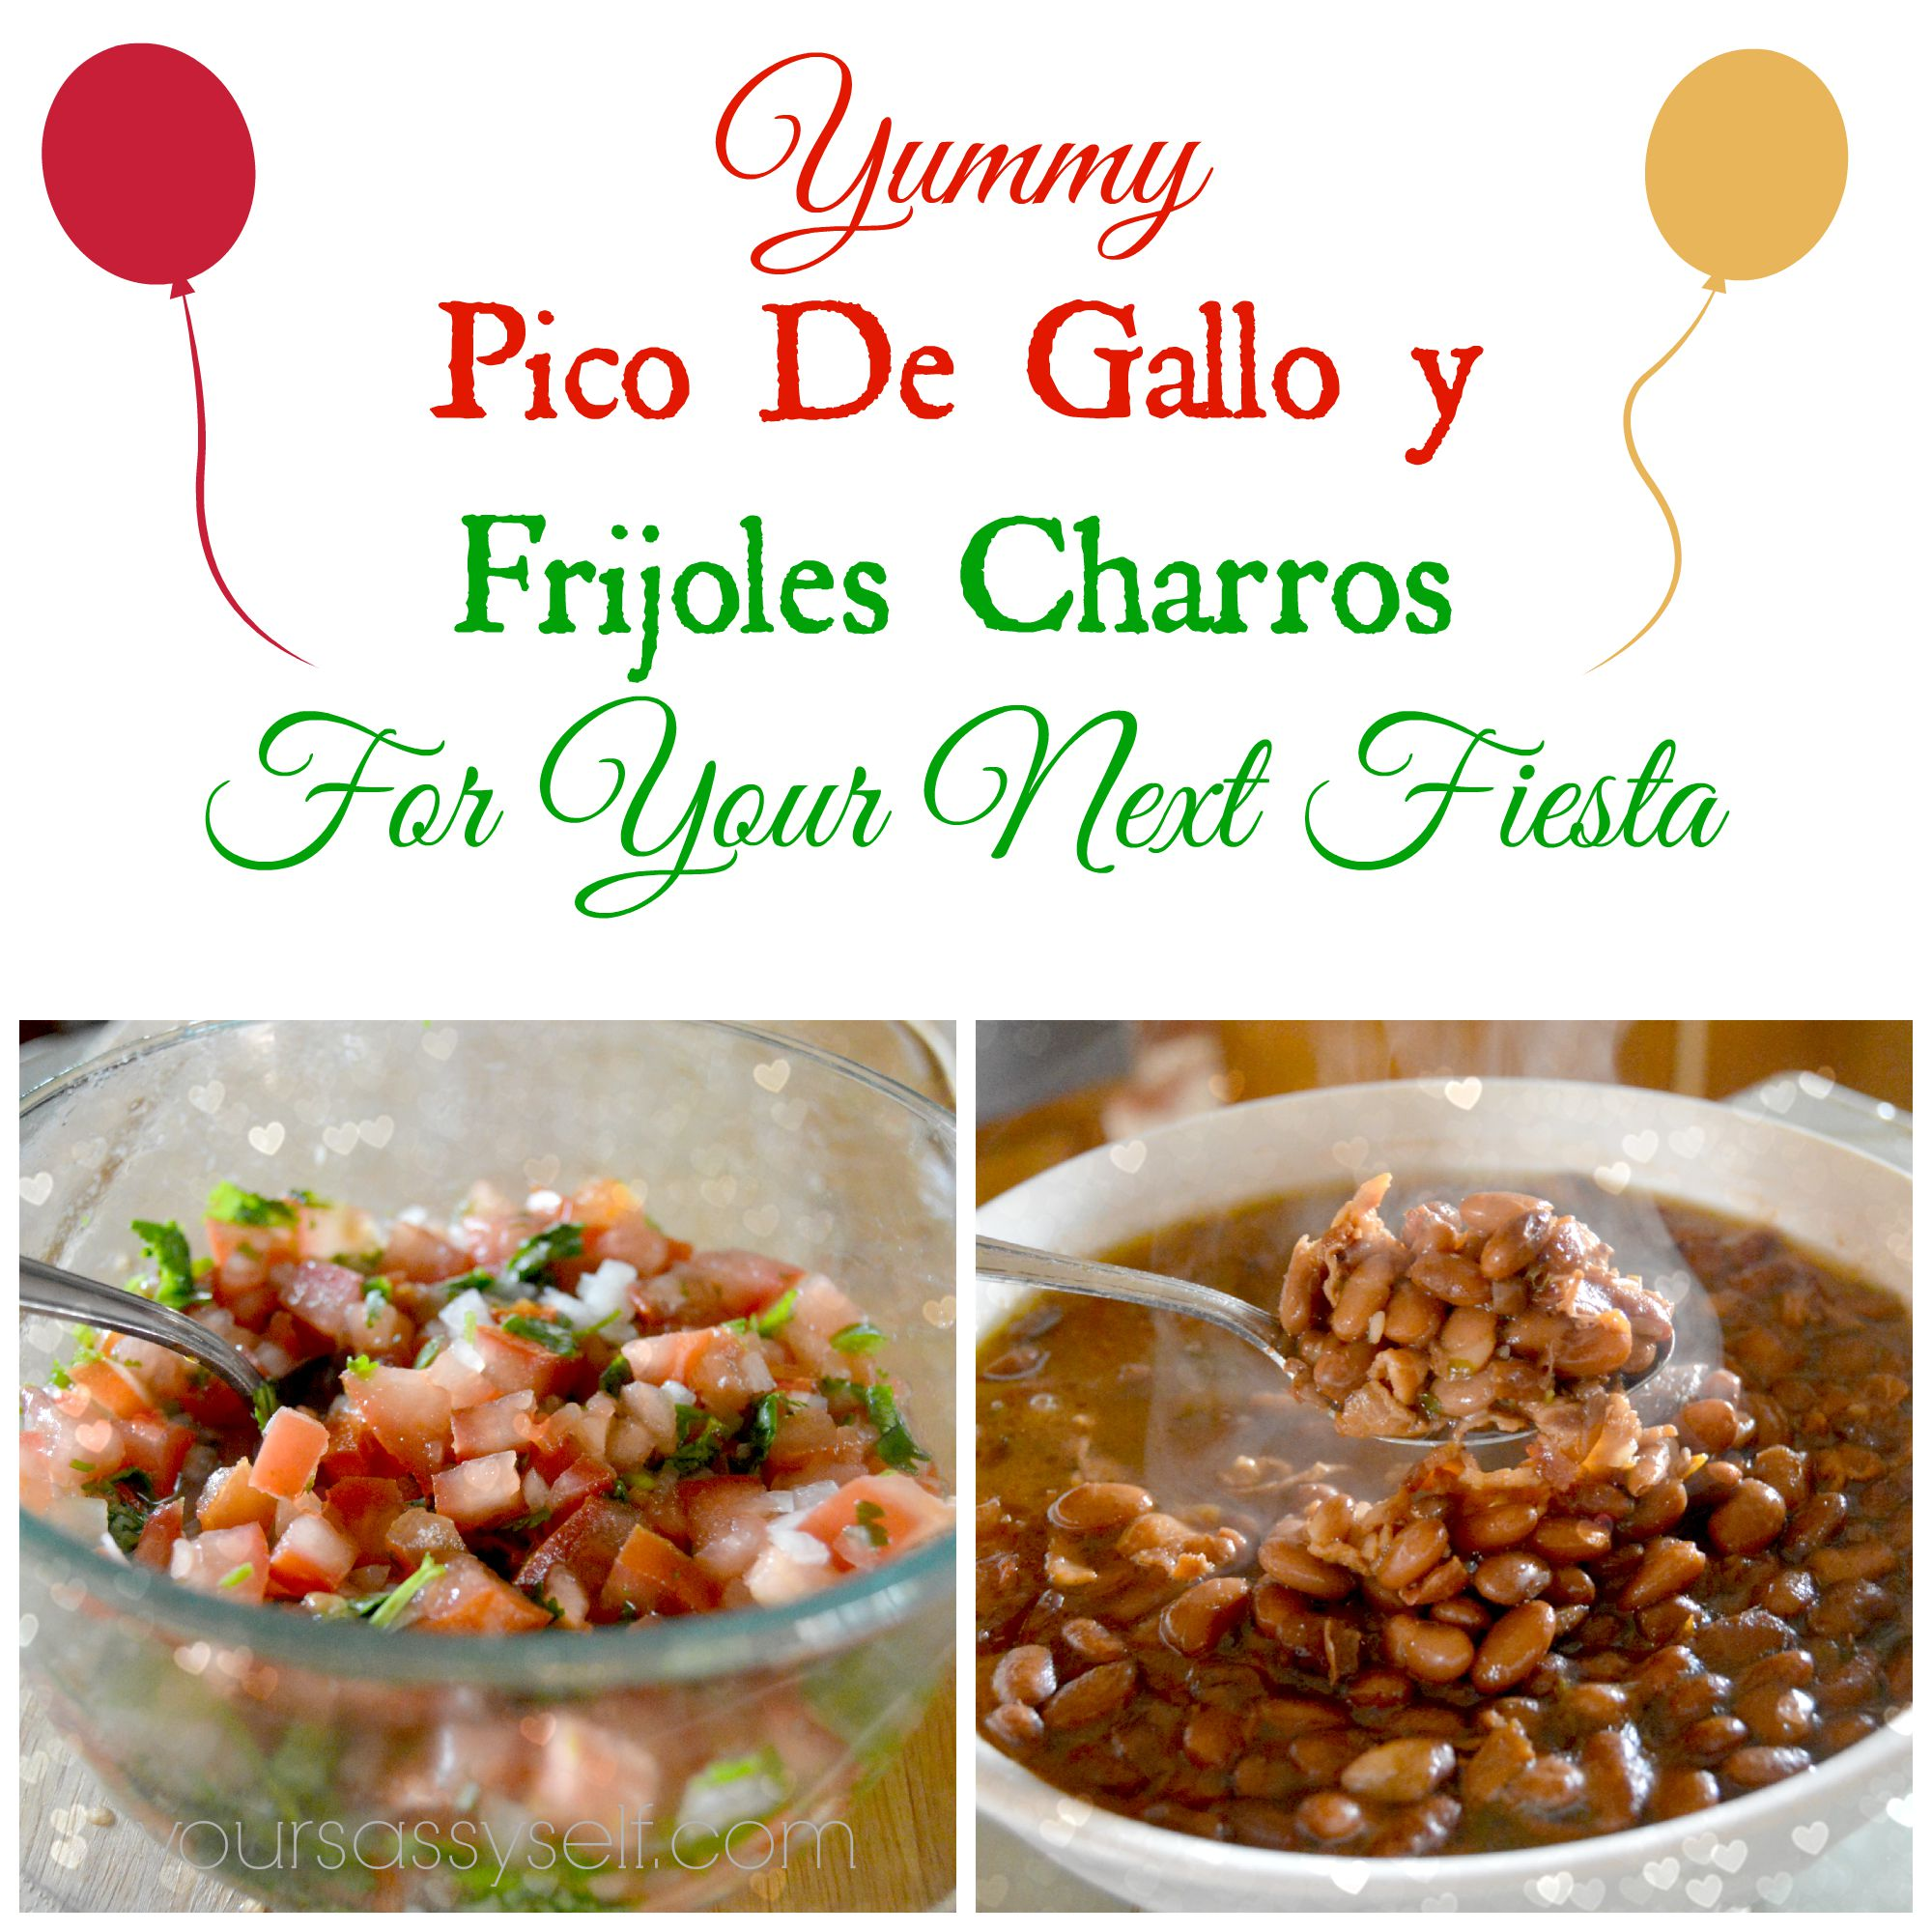 Pico De Gallo y Frijoles Charros to Wow at Your Next Fiesta